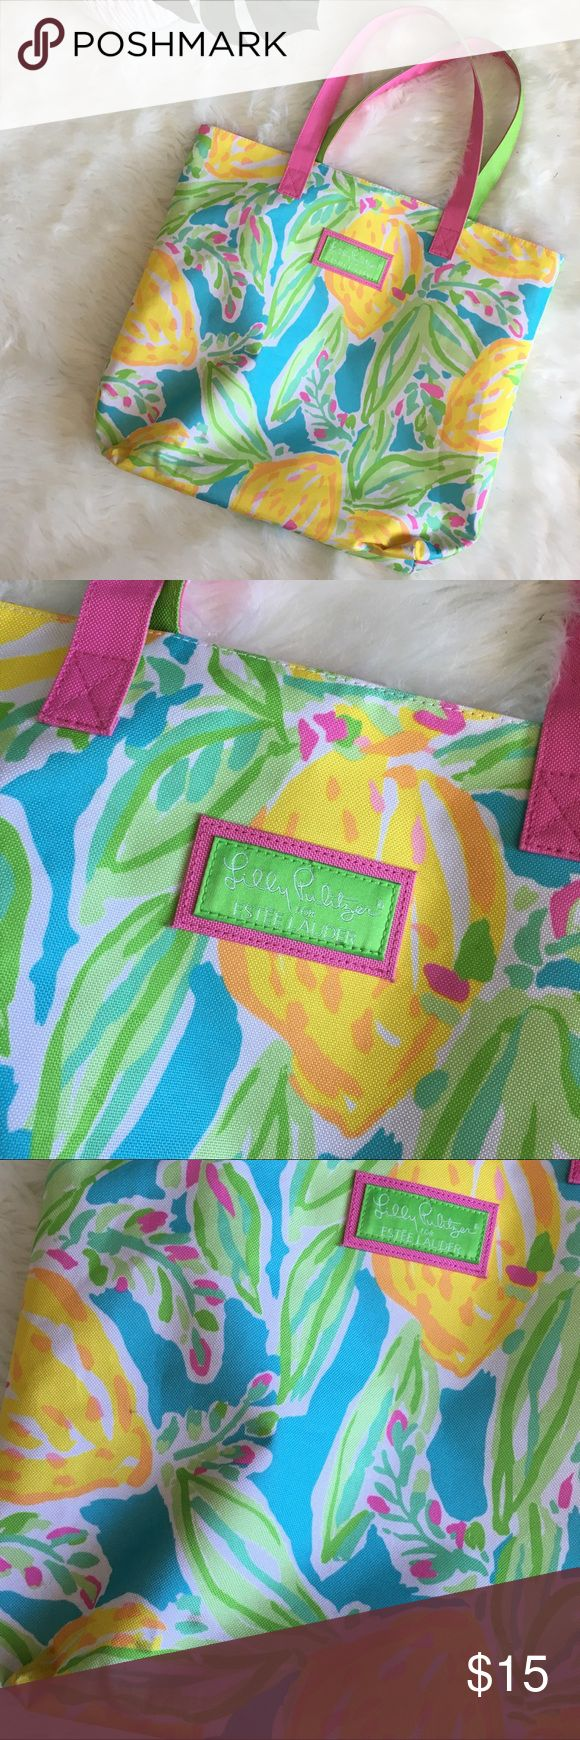 Lilly Pulitzer Estée Lauder Floral Lemon Tote Bag Lilly Pulitzer Estée Lauder Bright Floral Lemon Shoulder Tote Bag 16.5 X 14.5 New and never used condition. Lilly Pulitzer Bags Totes